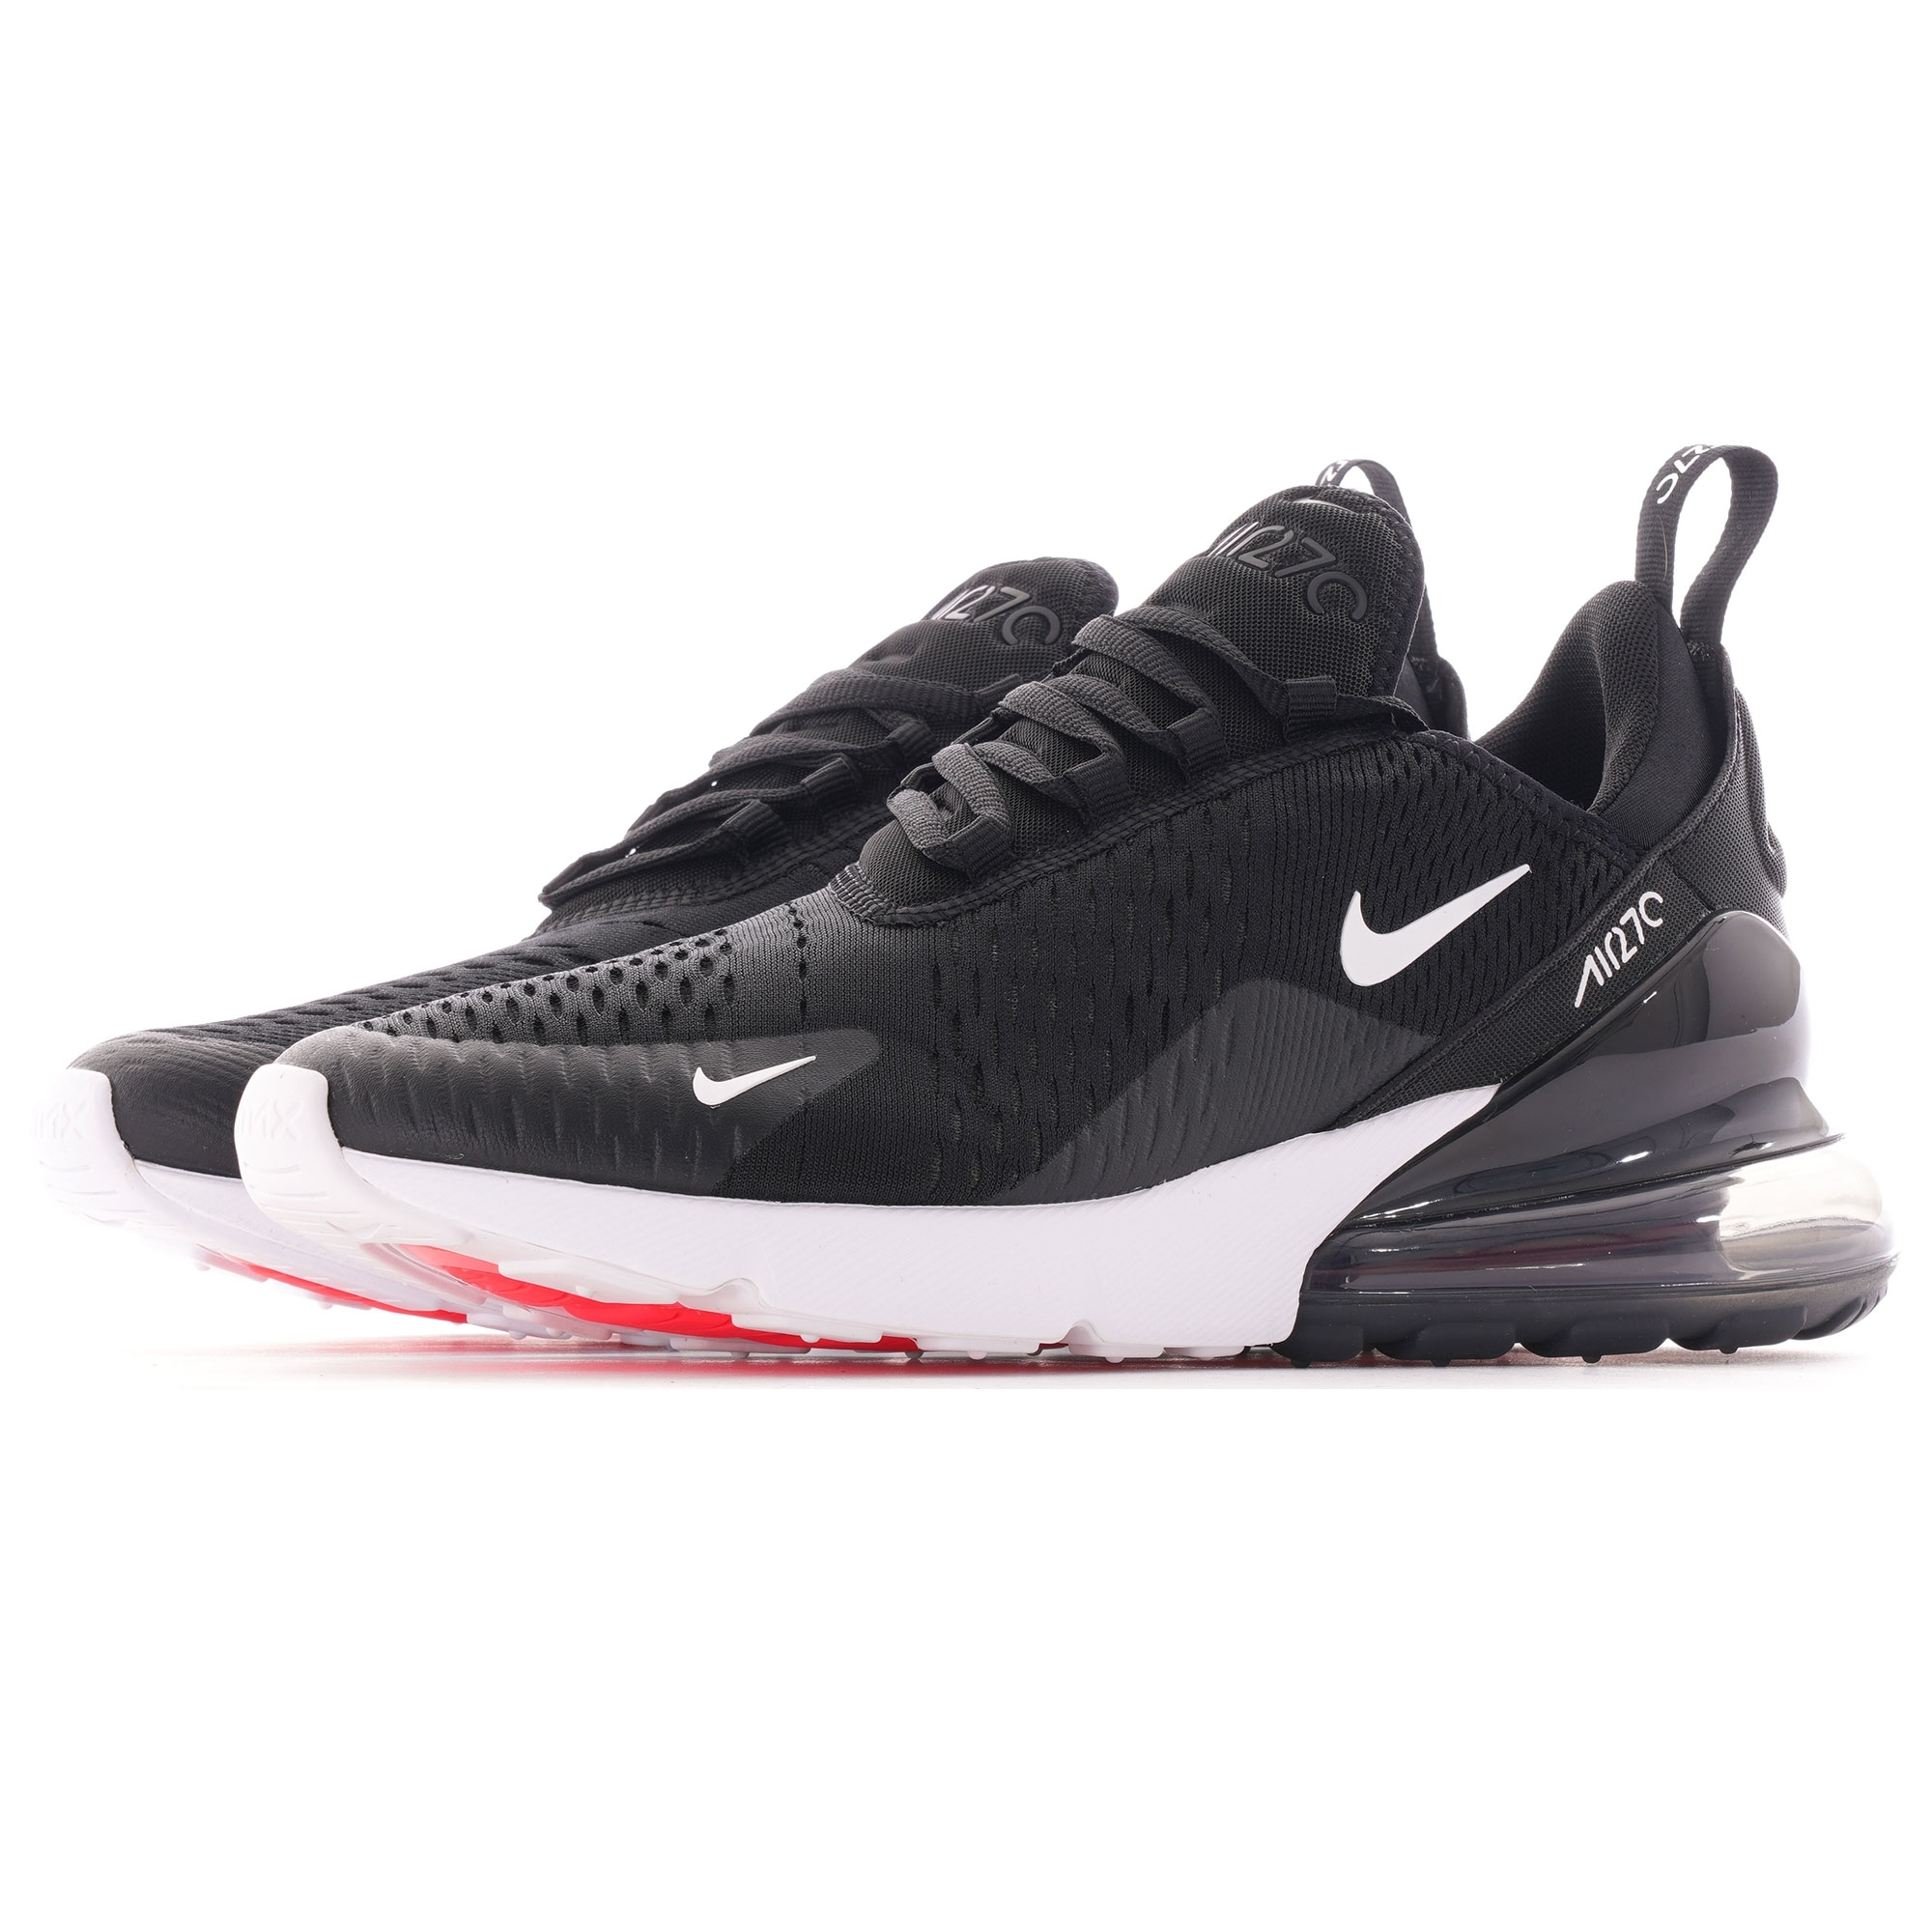 Air Max 270 Black, Anthracite & White